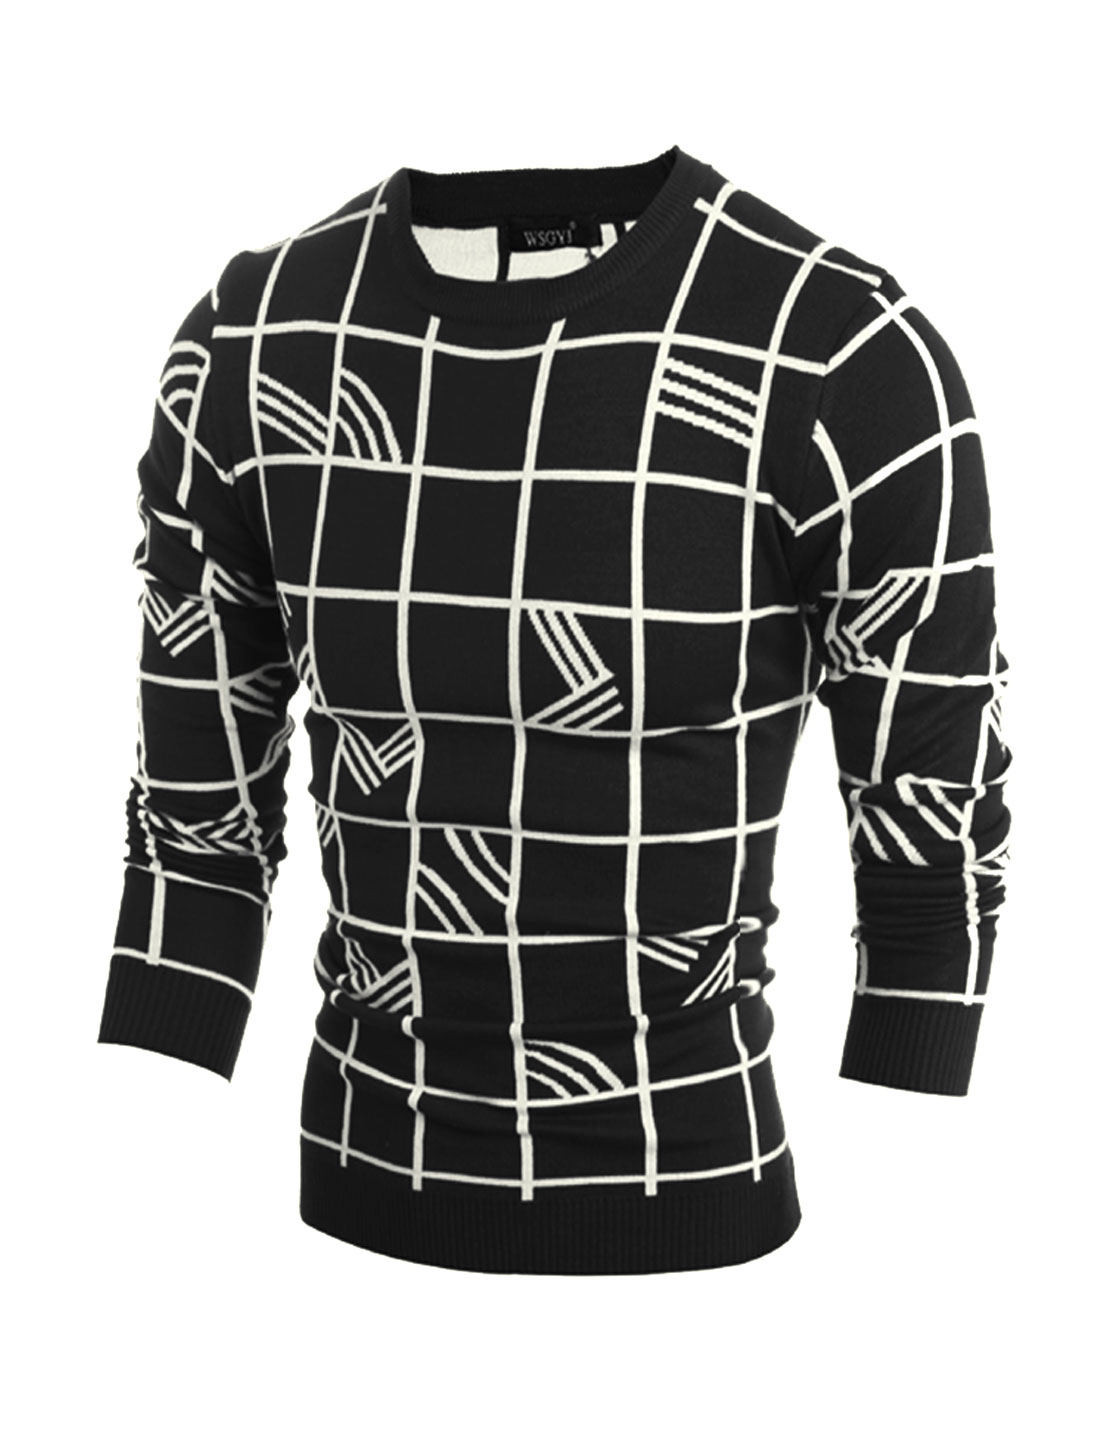 Men Crew Neck Plaids Stripes Slim Fit Knit Shirt Black M